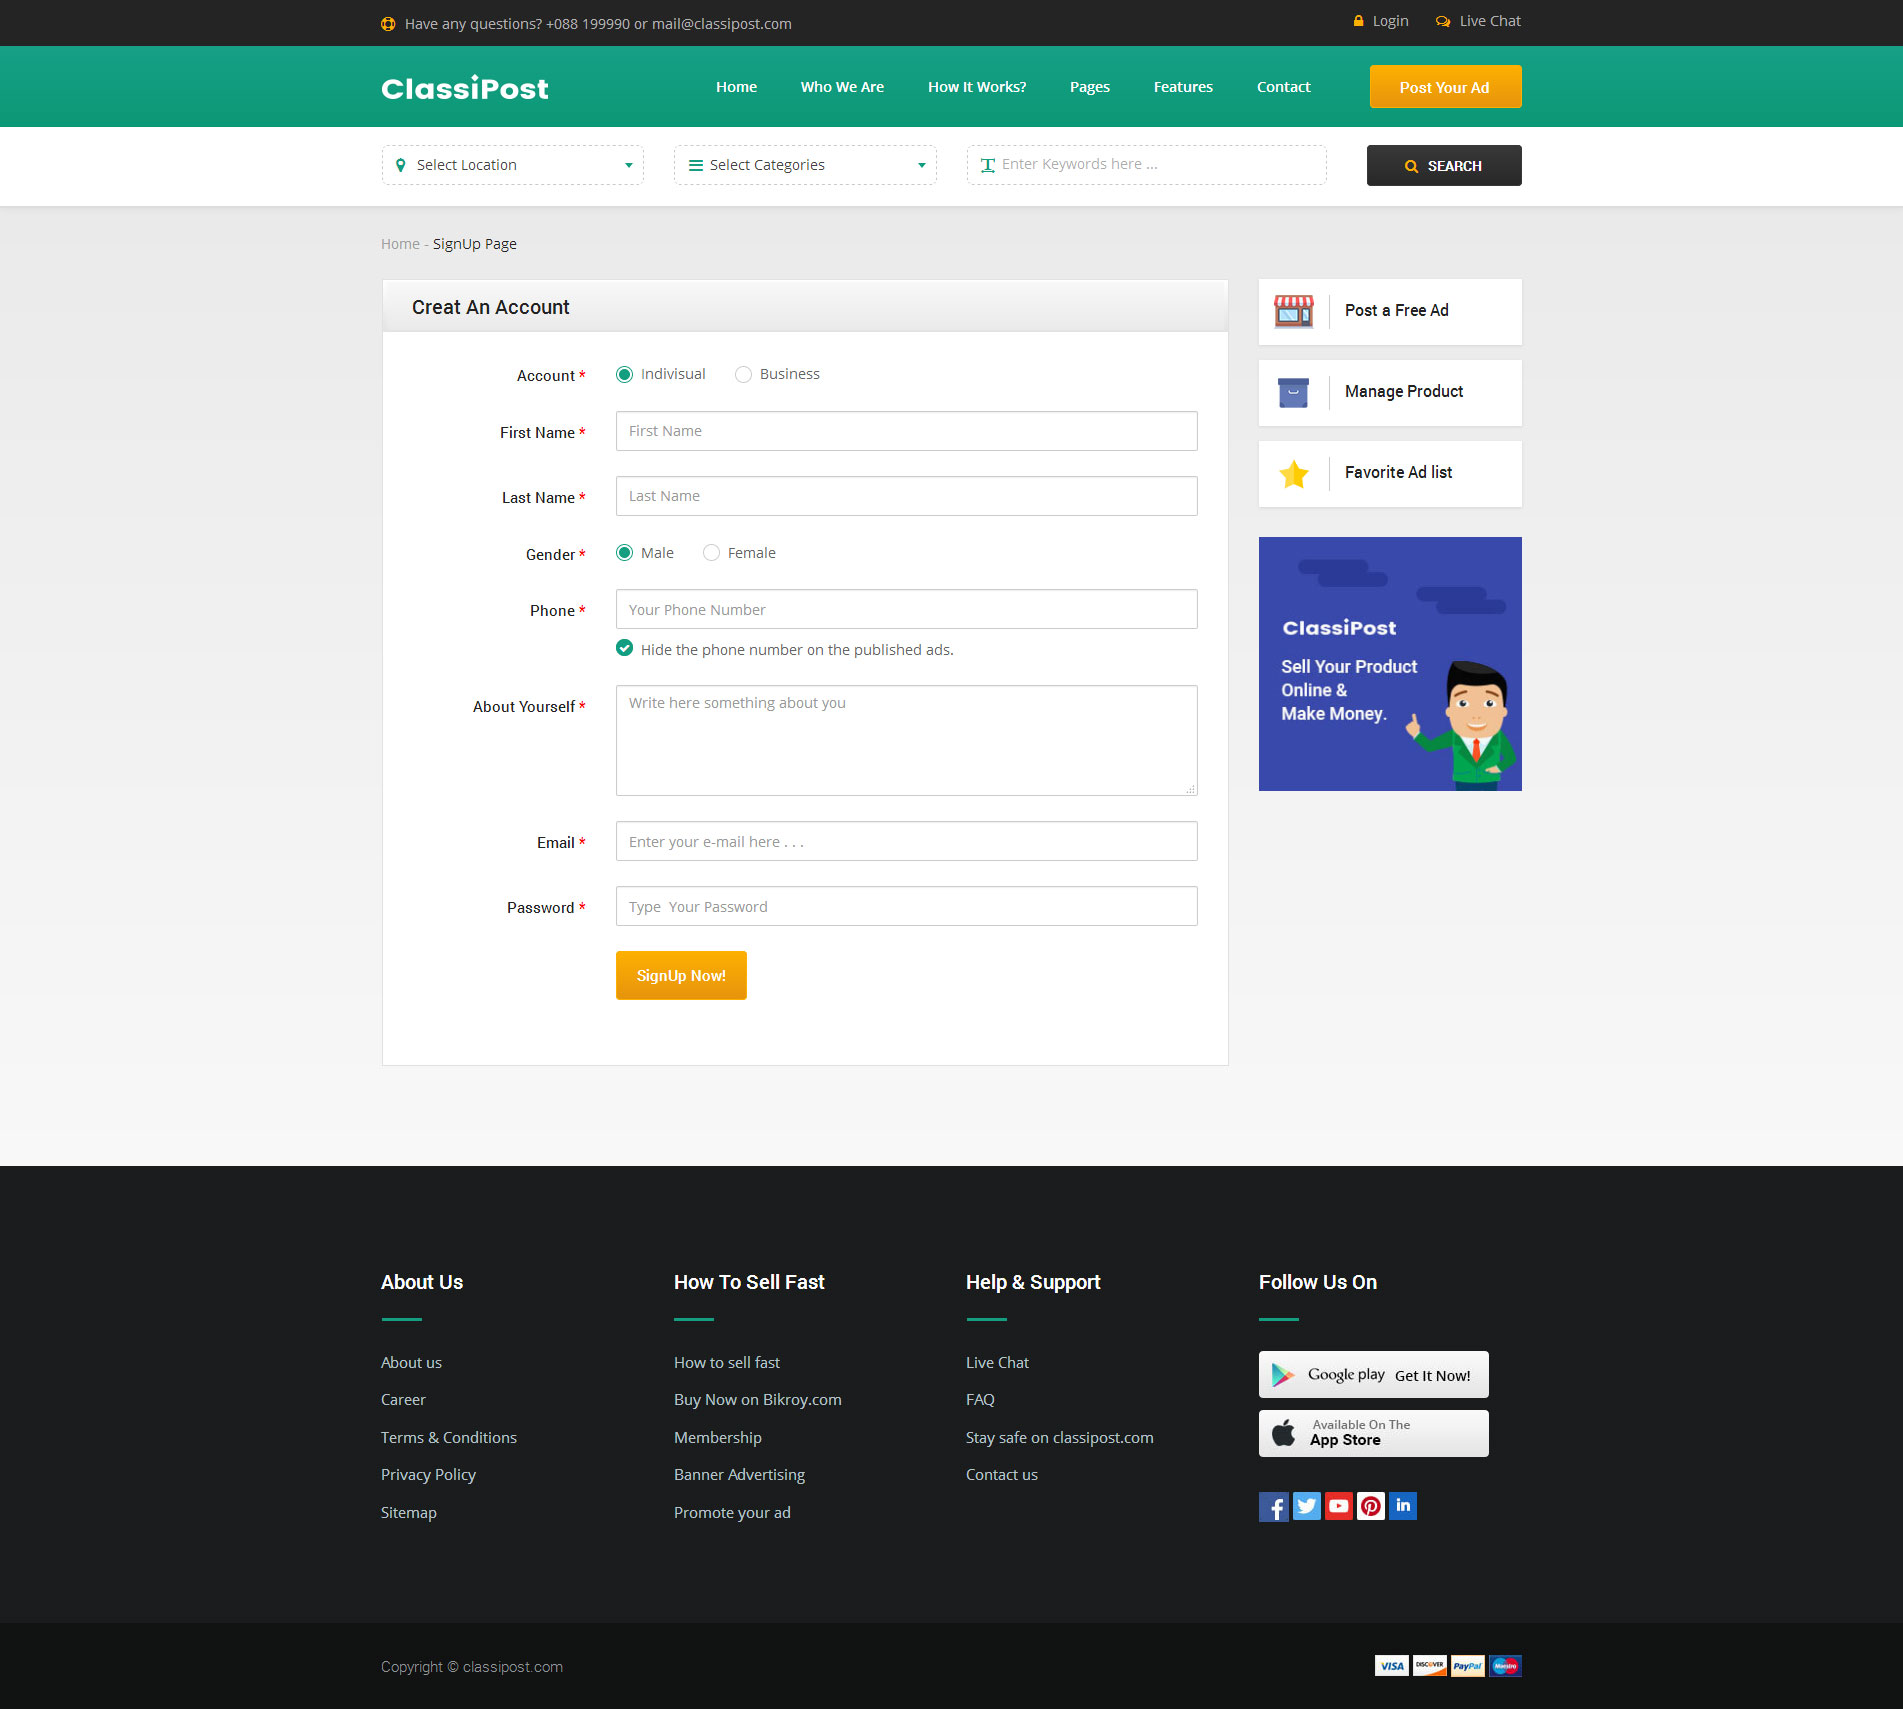 Classipost classified ads html template classified classipost classipost classified ads html template classified classipost ads template websites ideas projects pinterest html templates templates and maxwellsz